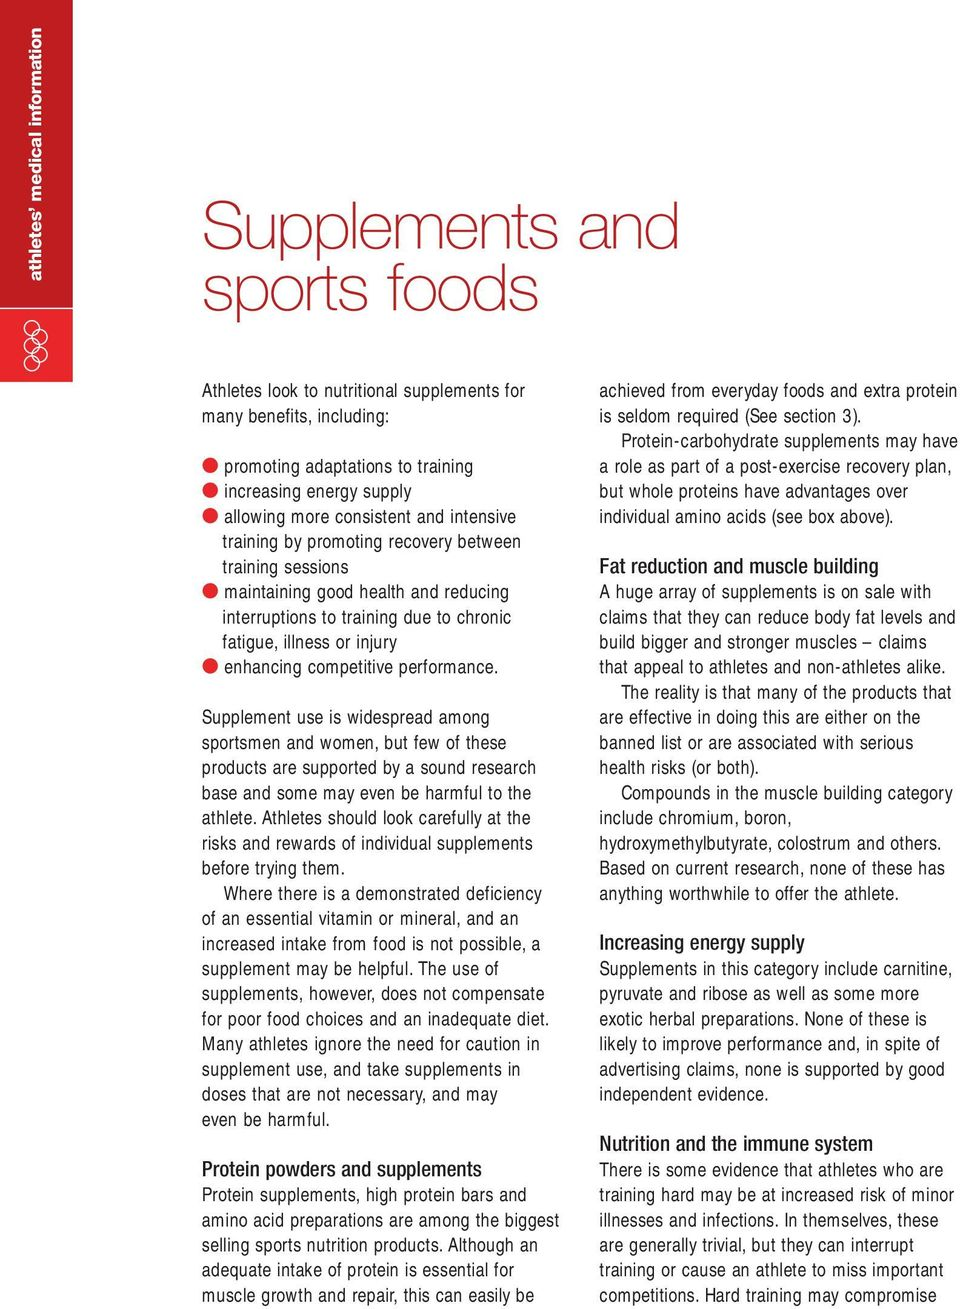 Supplement use is widespread among sportsmen and women, but few of these products are supported by a sound research base and some may even be harmful to the athlete.